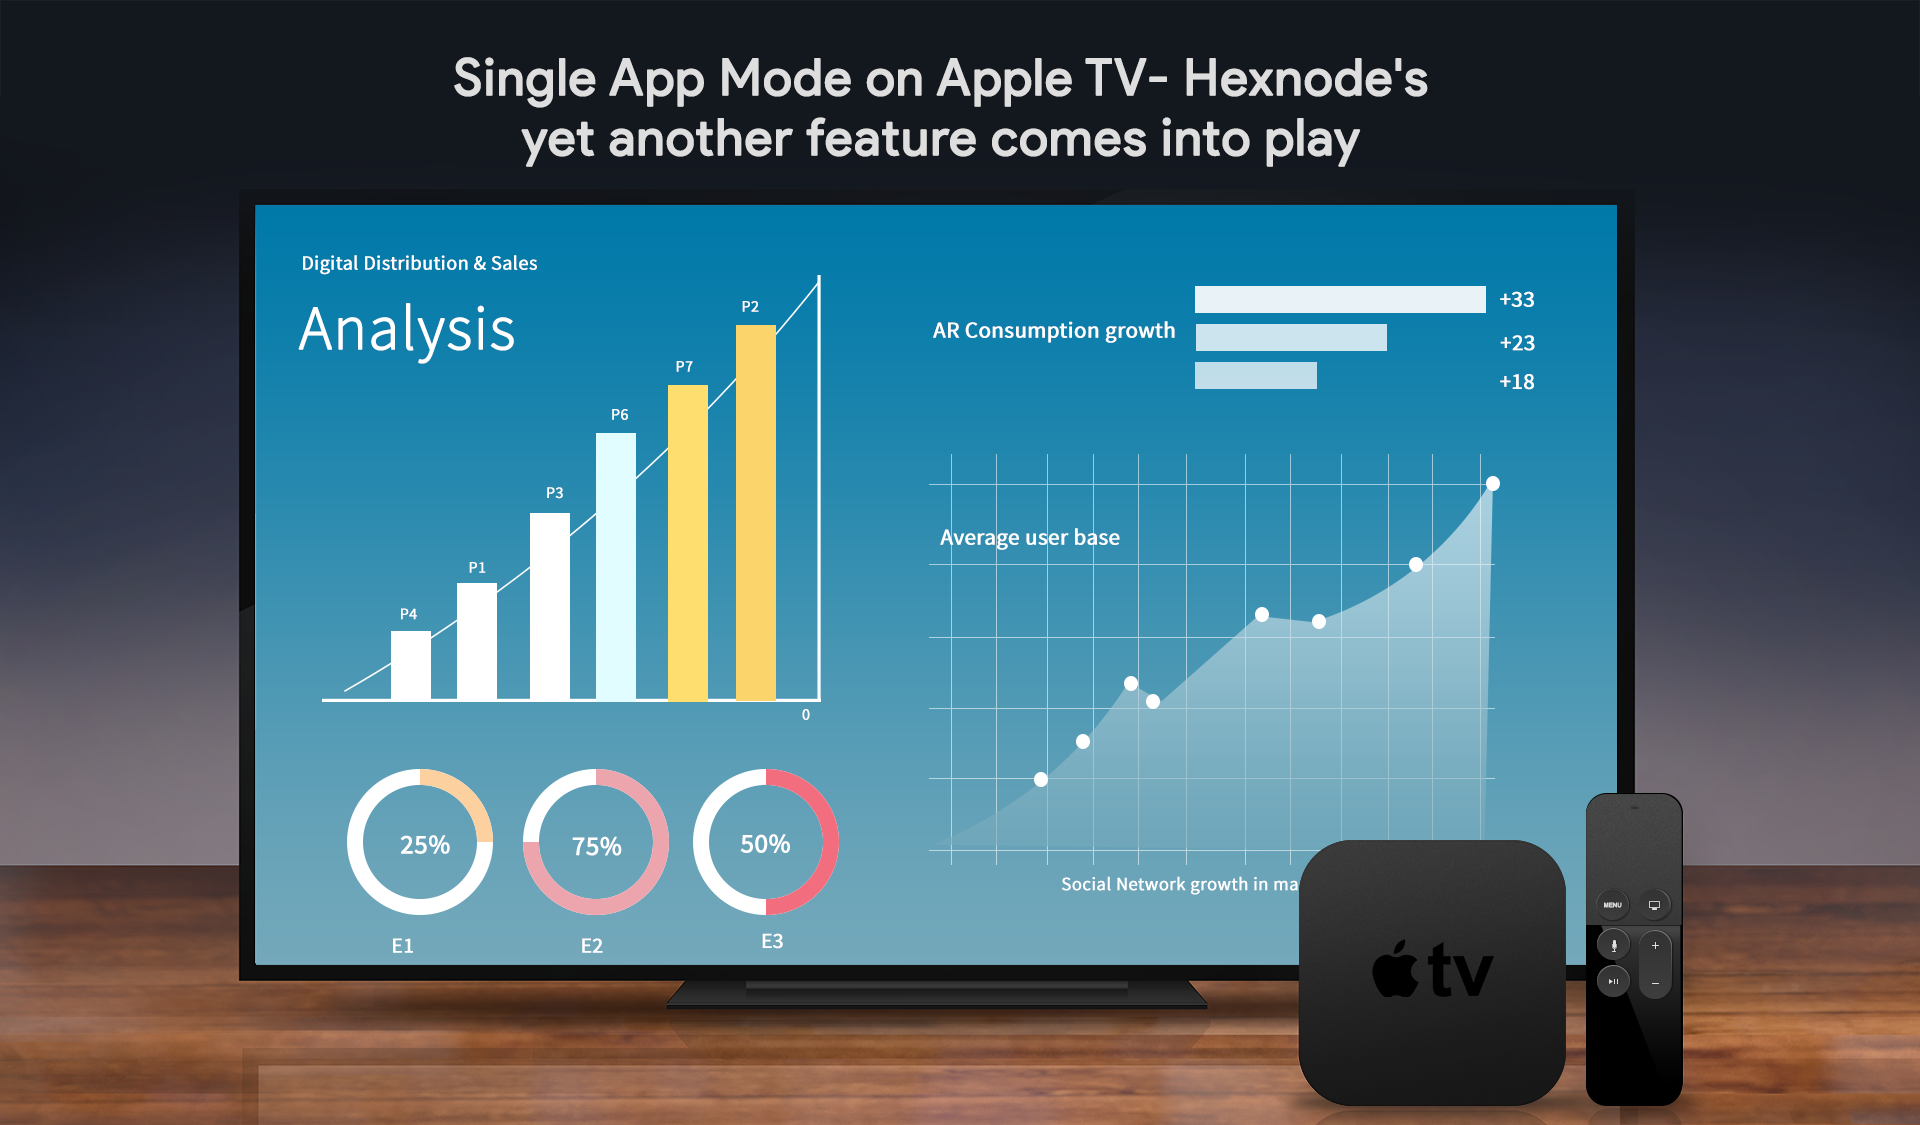 Single App Mode on Apple TV- Hexnode's Yet Another Feature